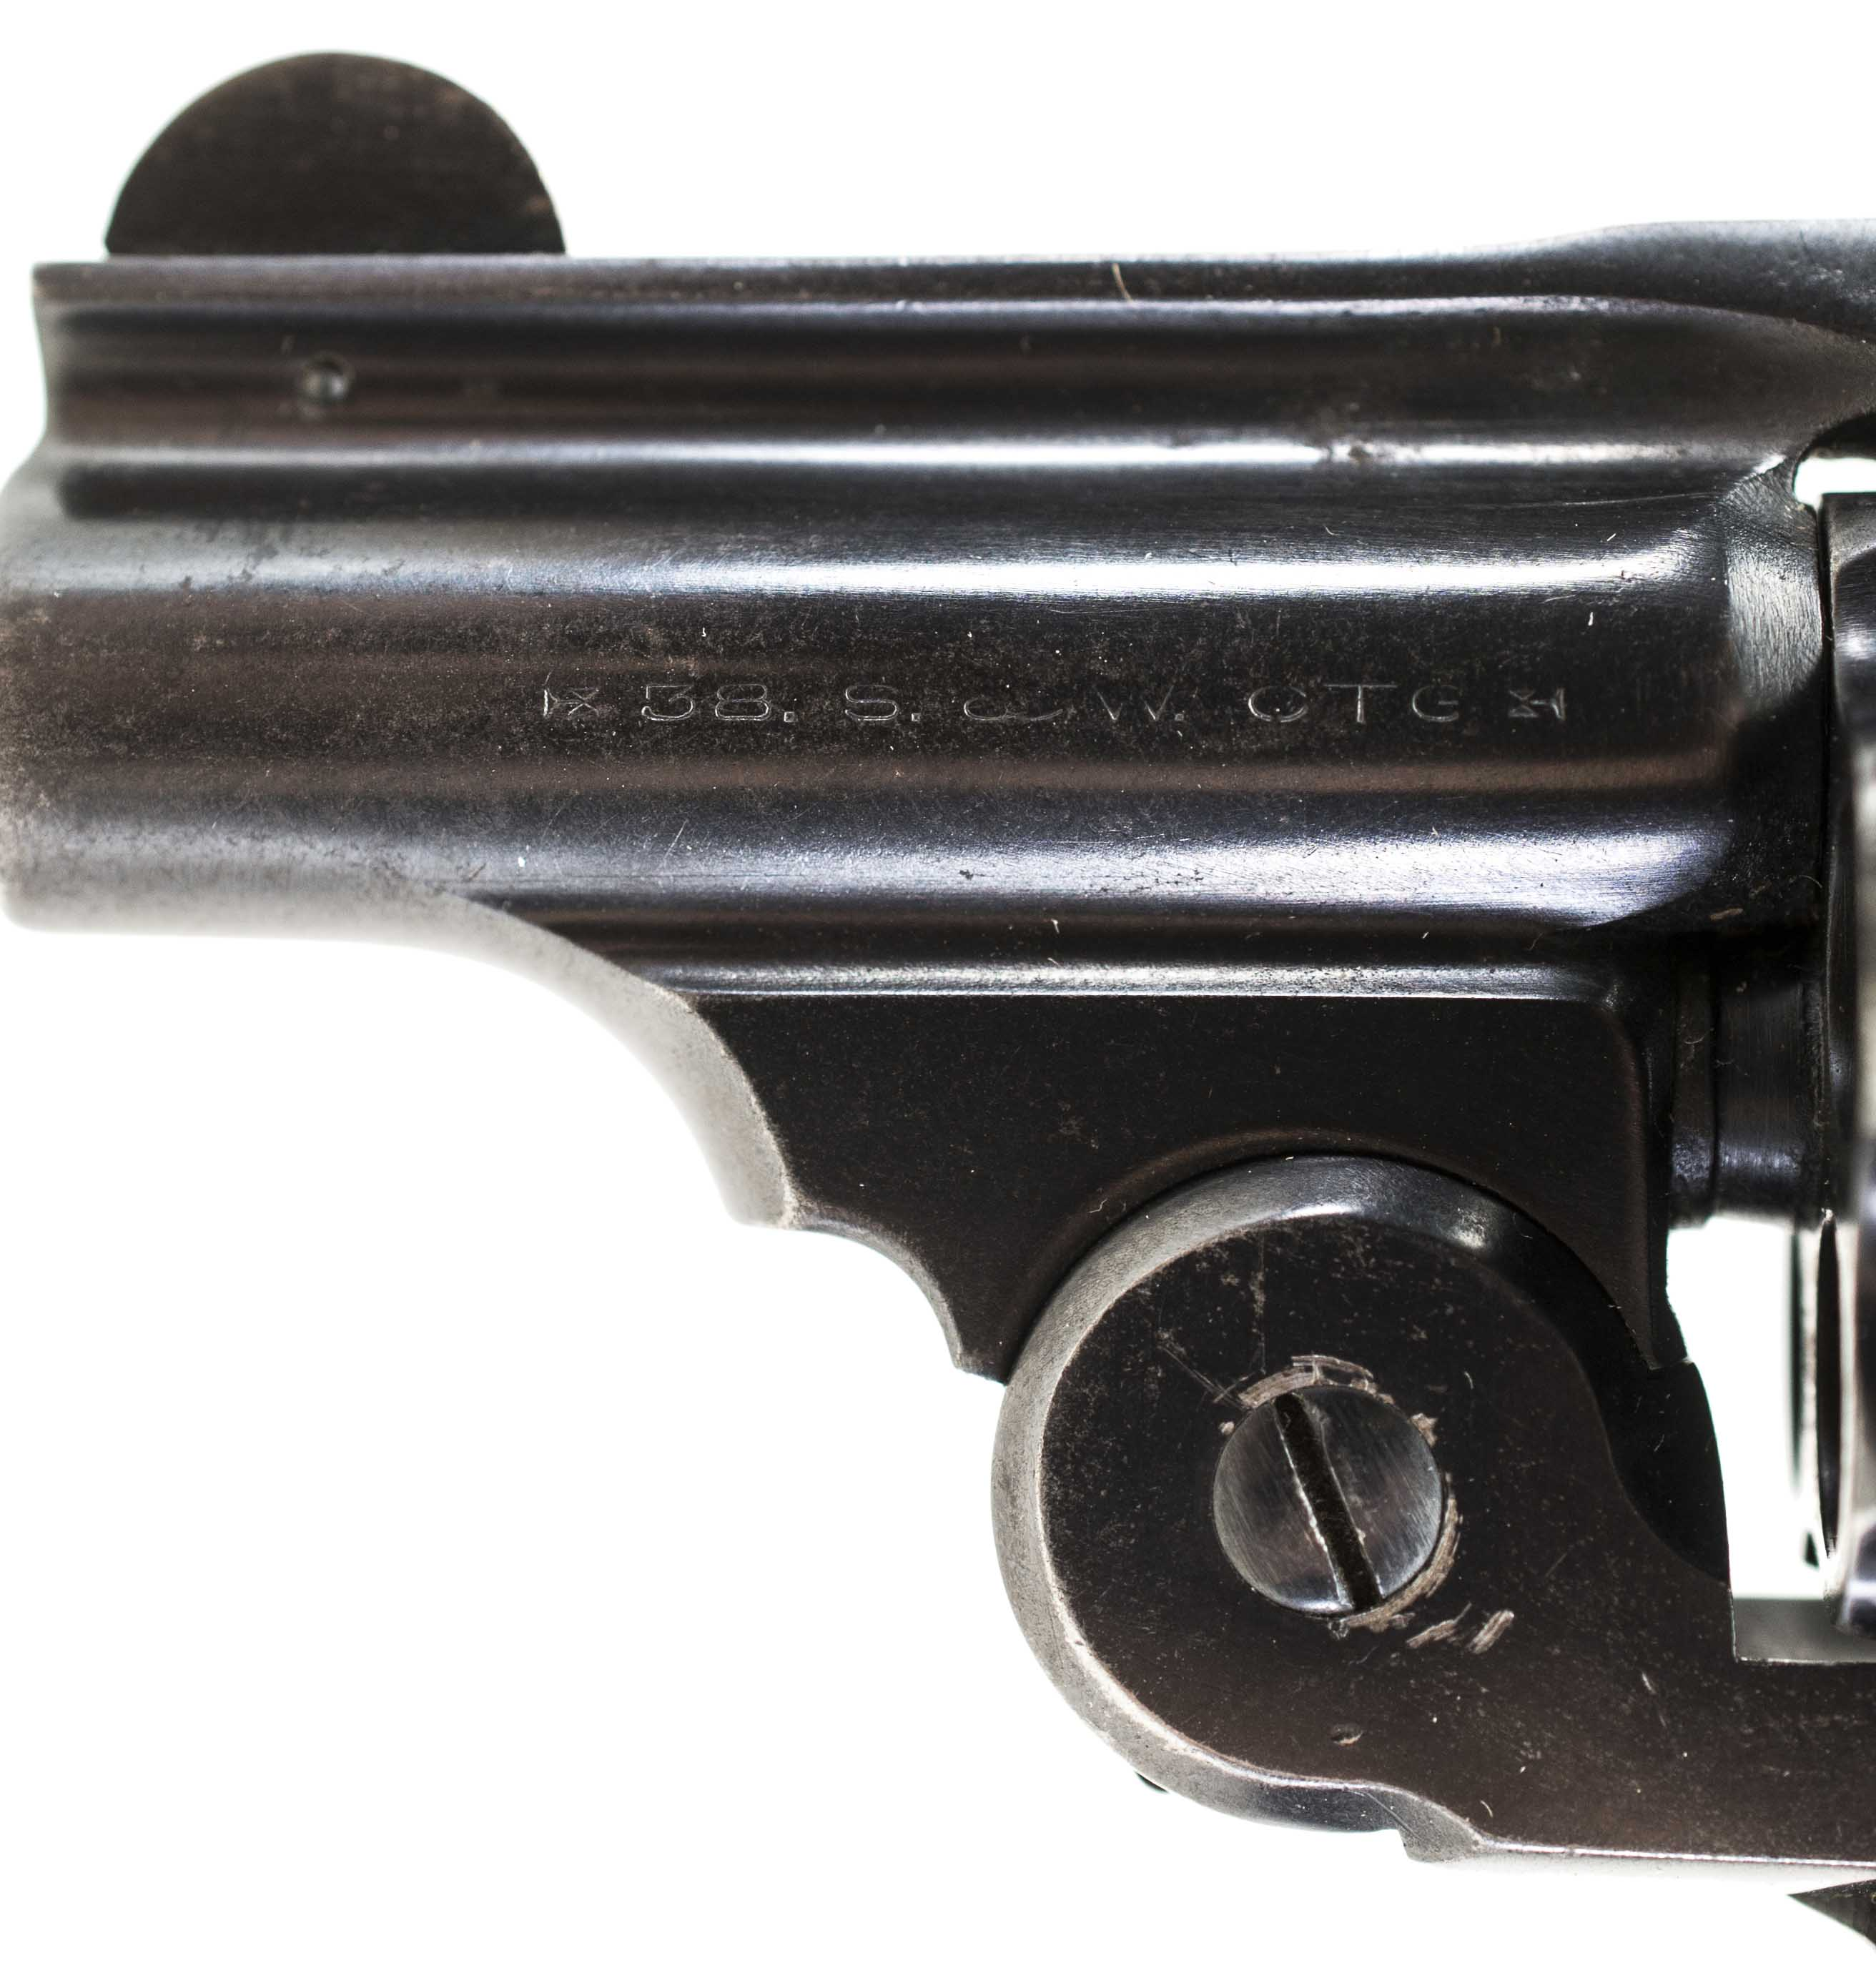 SMITH & WESSON SAFETY HAMMERLESS (Auction ID: 5394358, End